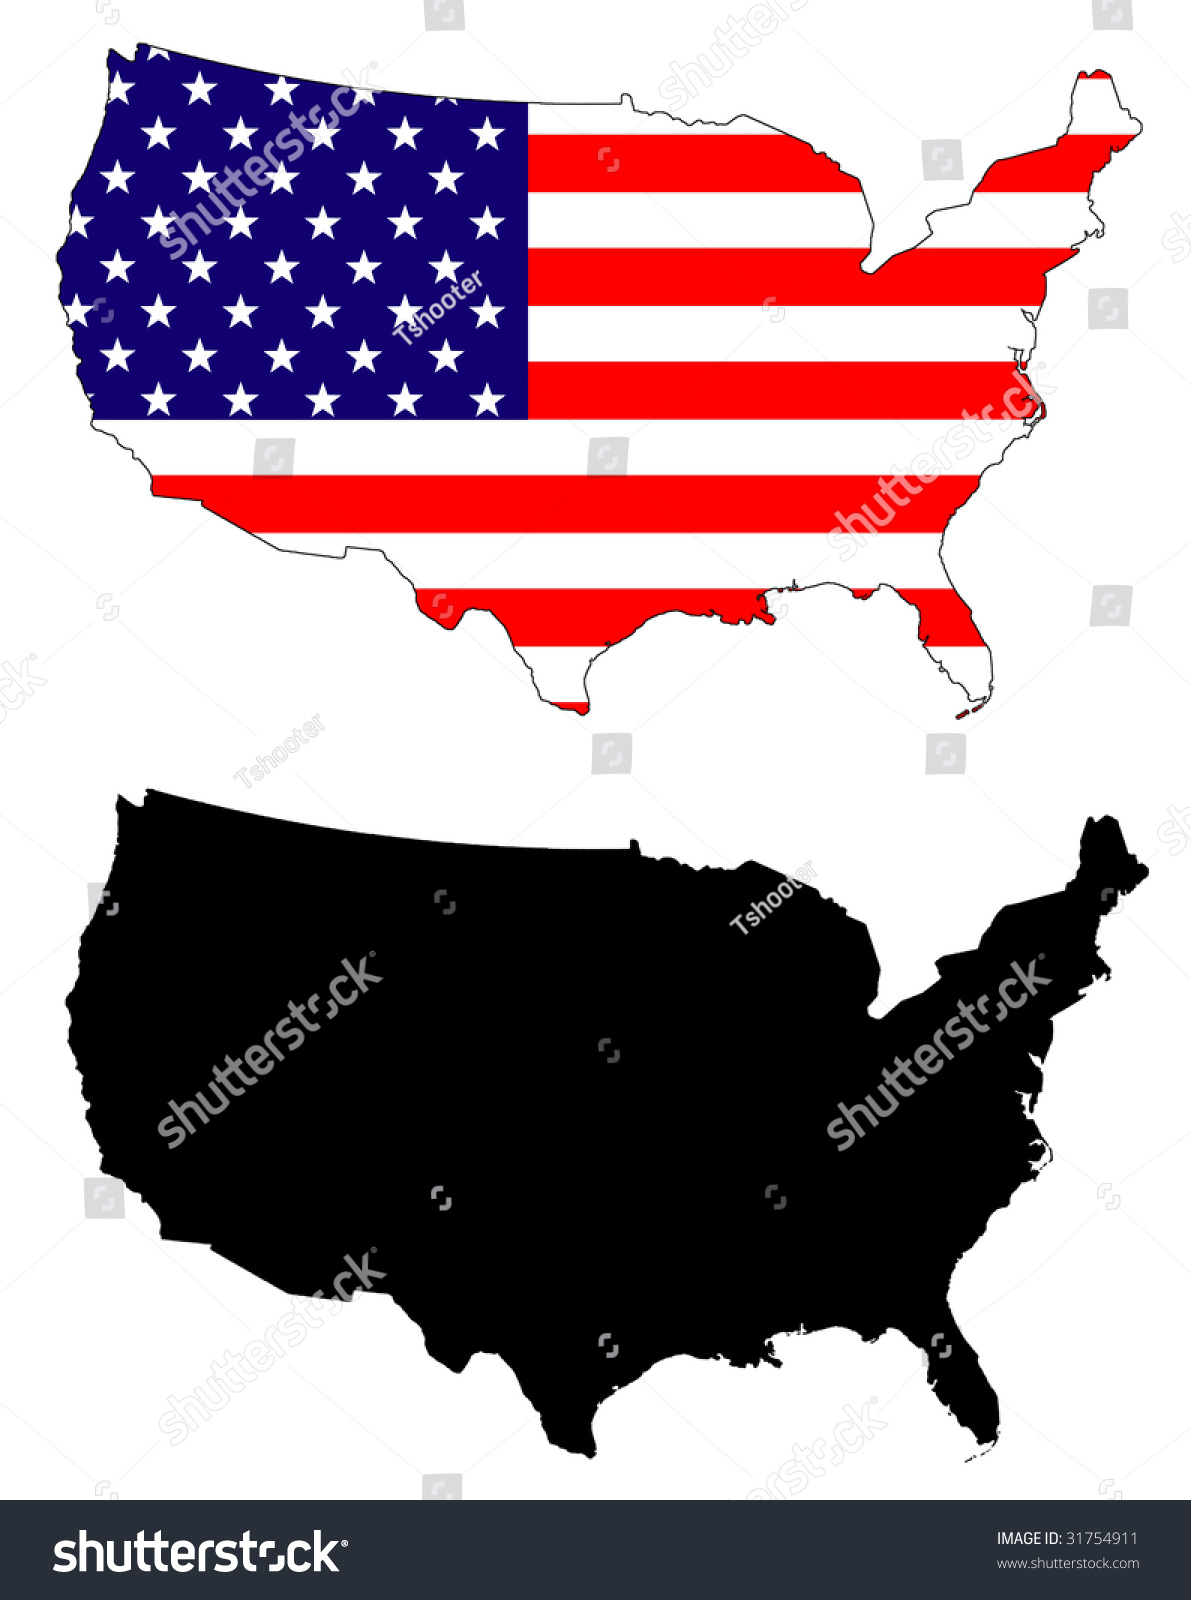 Drawing Map Flag Usa Stock Illustration  Shutterstock - Drawing of usa map